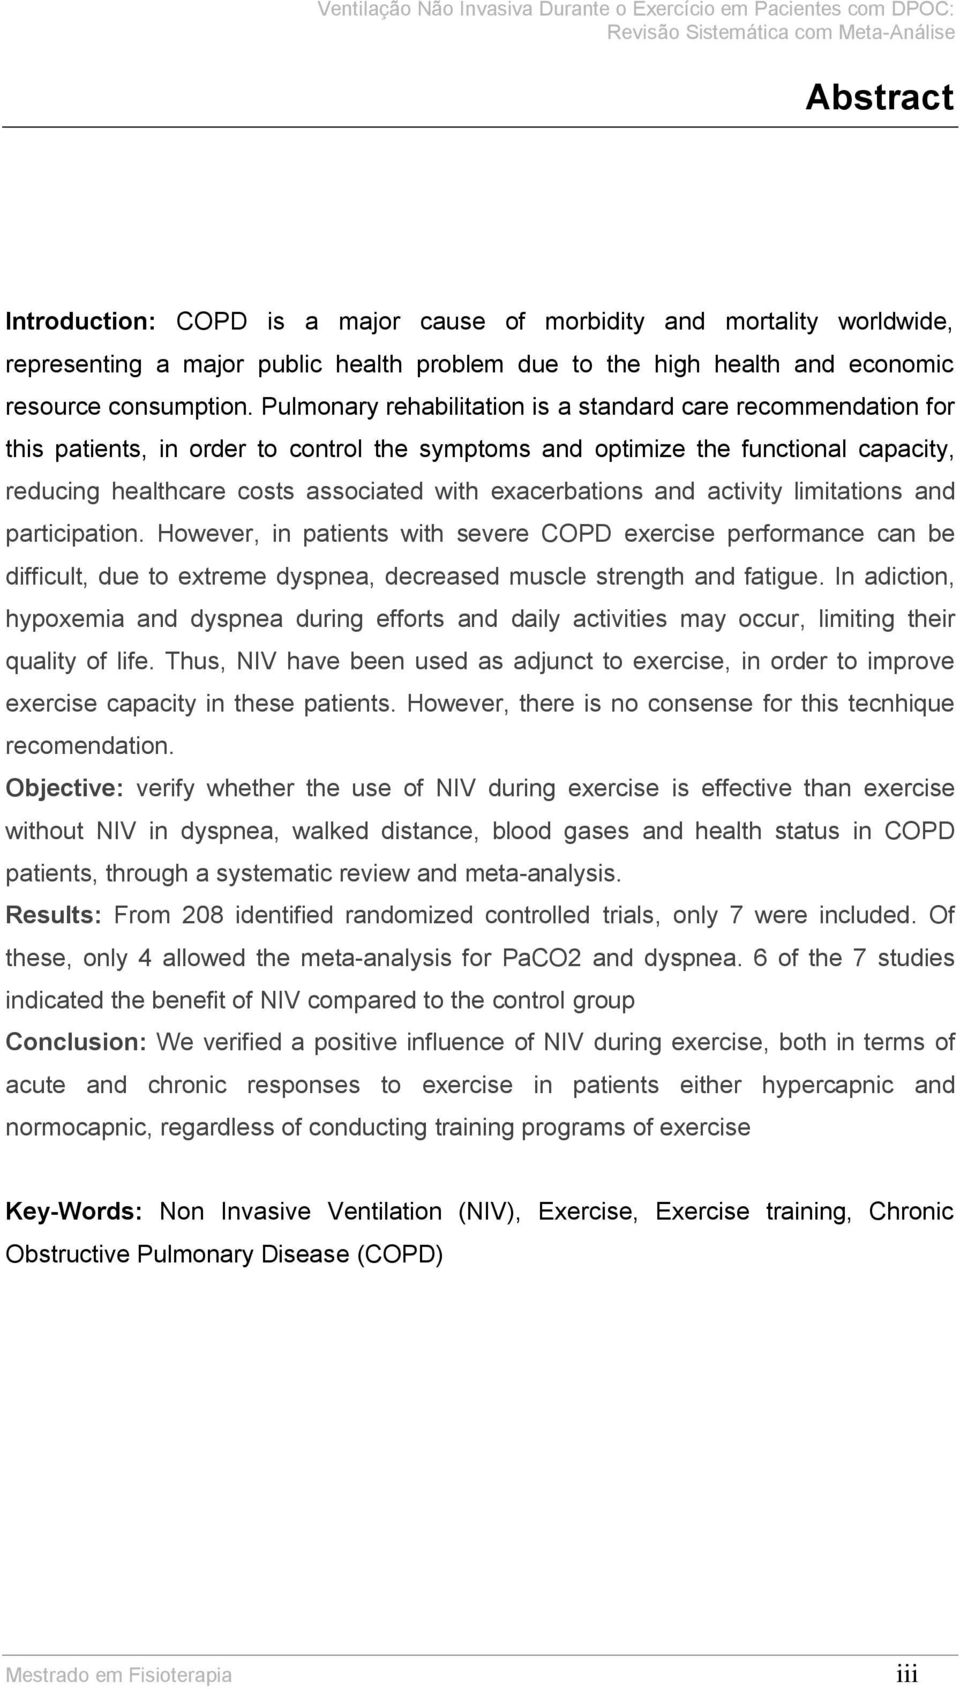 Ventilao no invasiva durante o exerccio em pacientes com dpoc exacerbations and activity limitations and participation however in patients with severe copd exercise performance fandeluxe Gallery